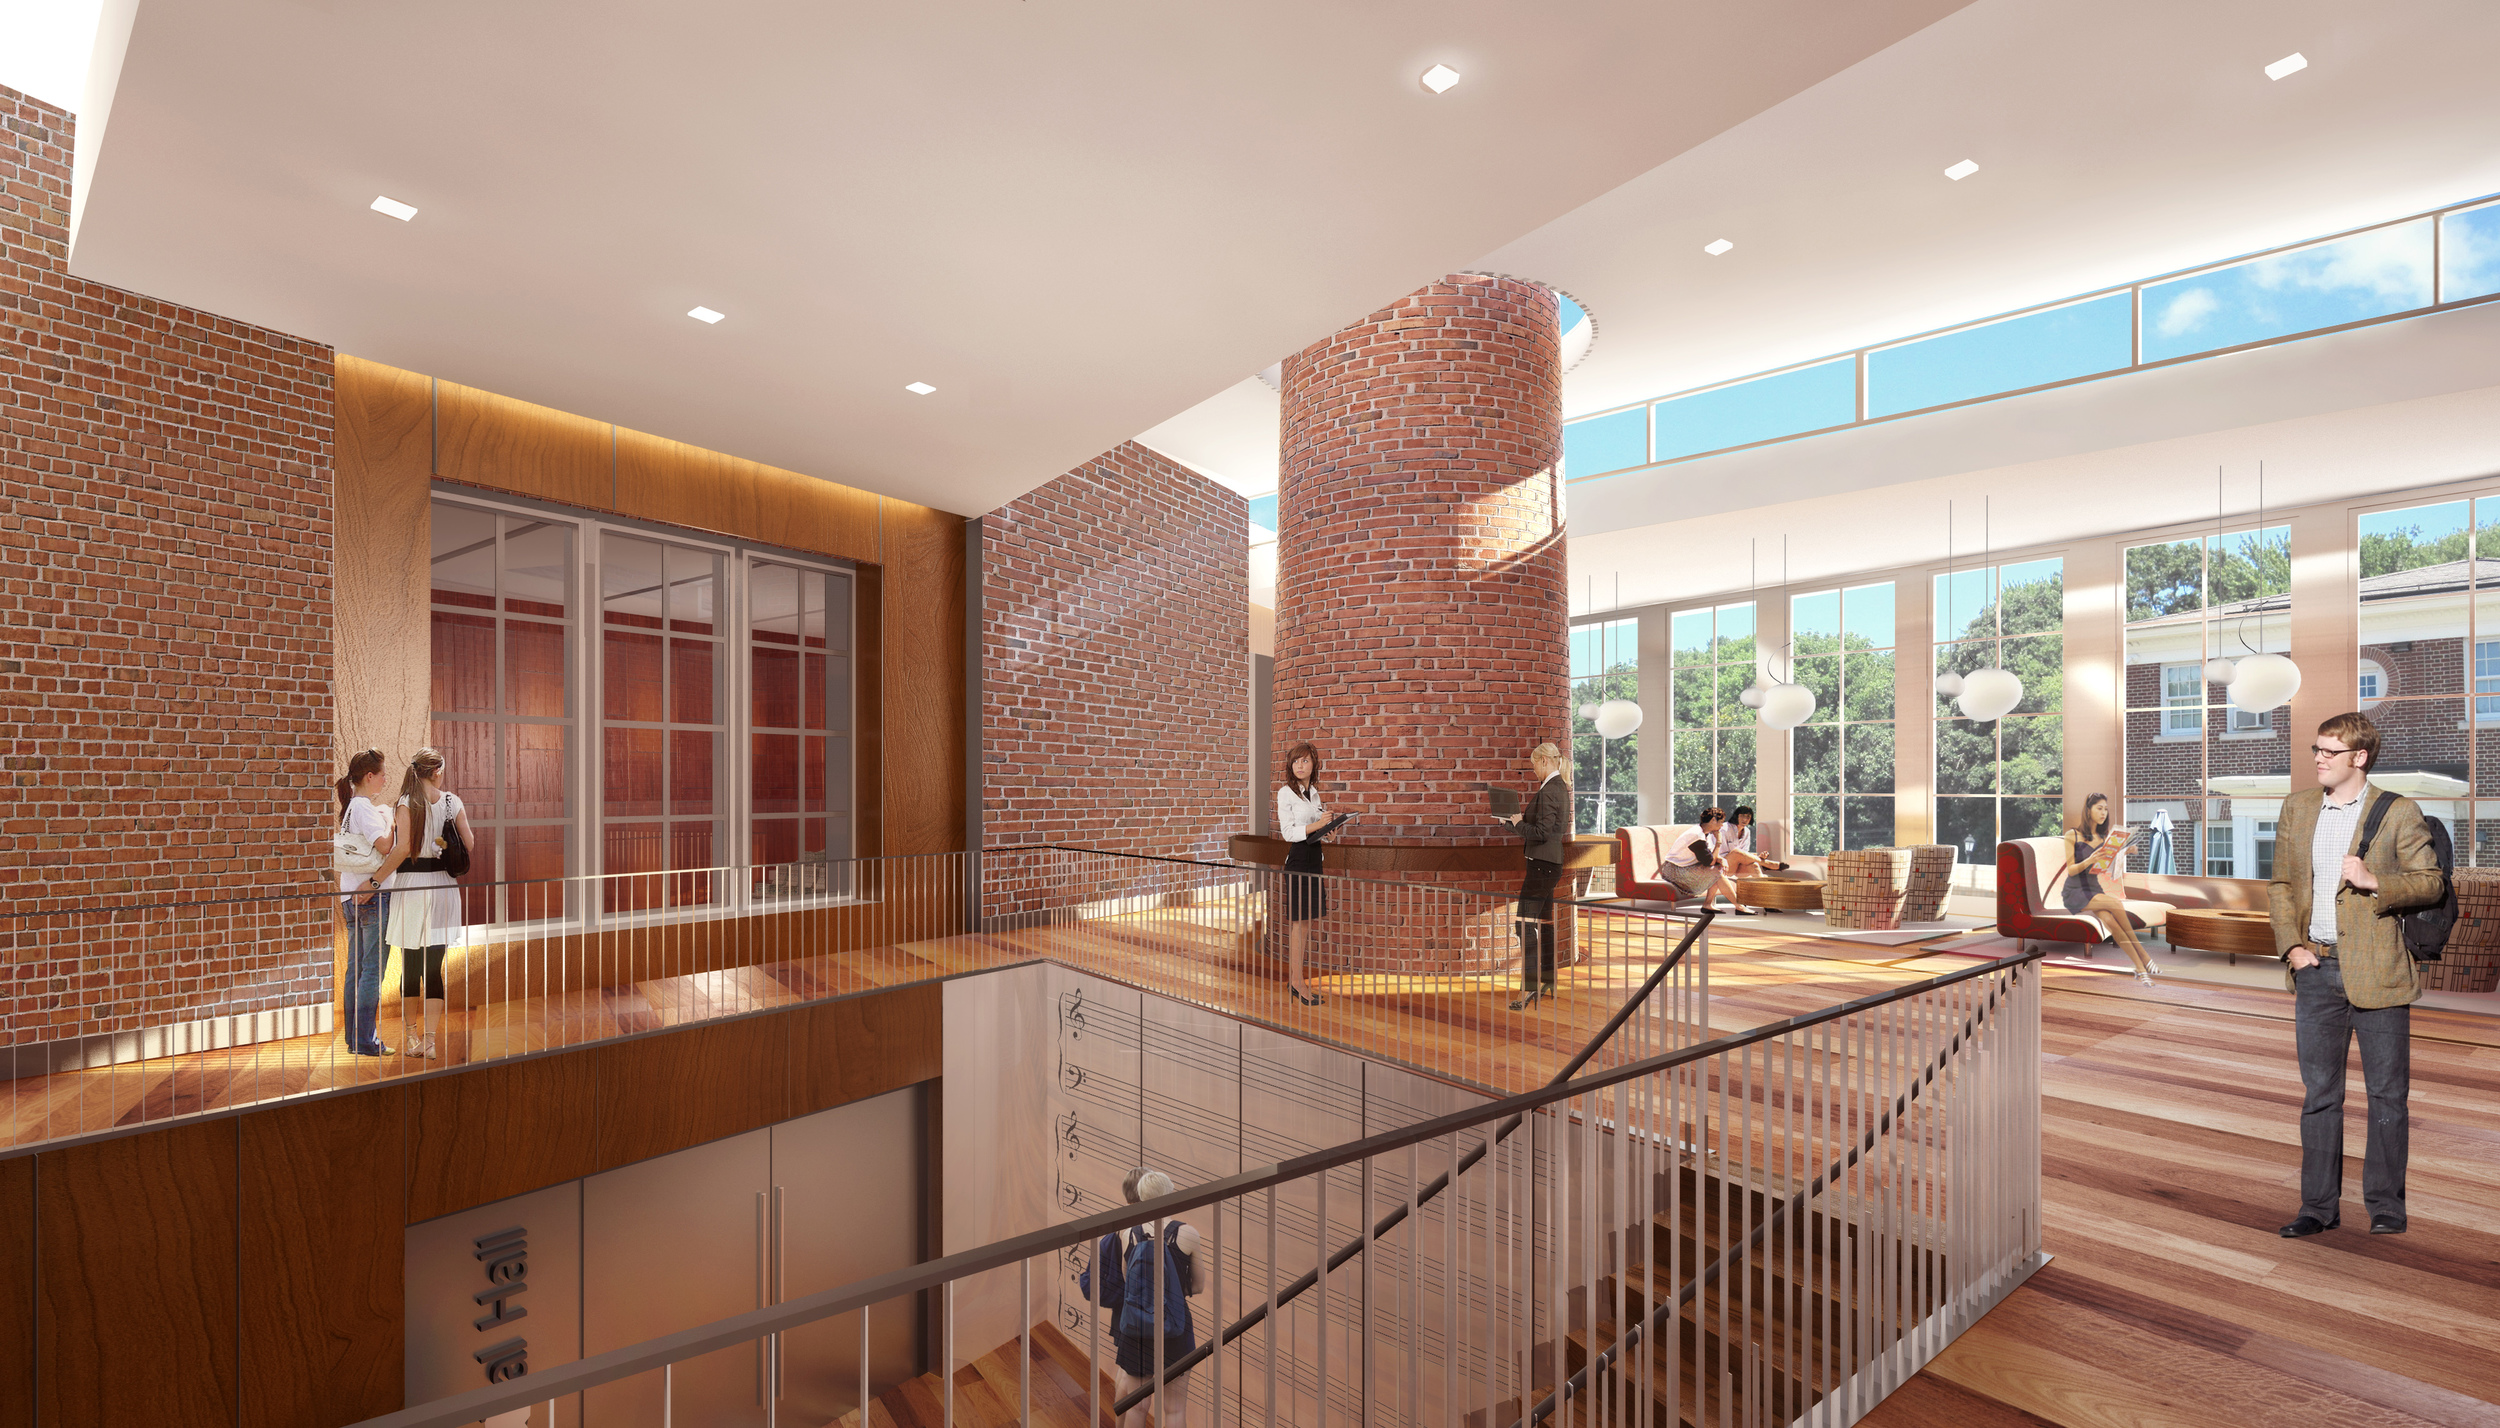 The Music and Campus Center will not only be a home for music, but will provide study and social spaces for students.